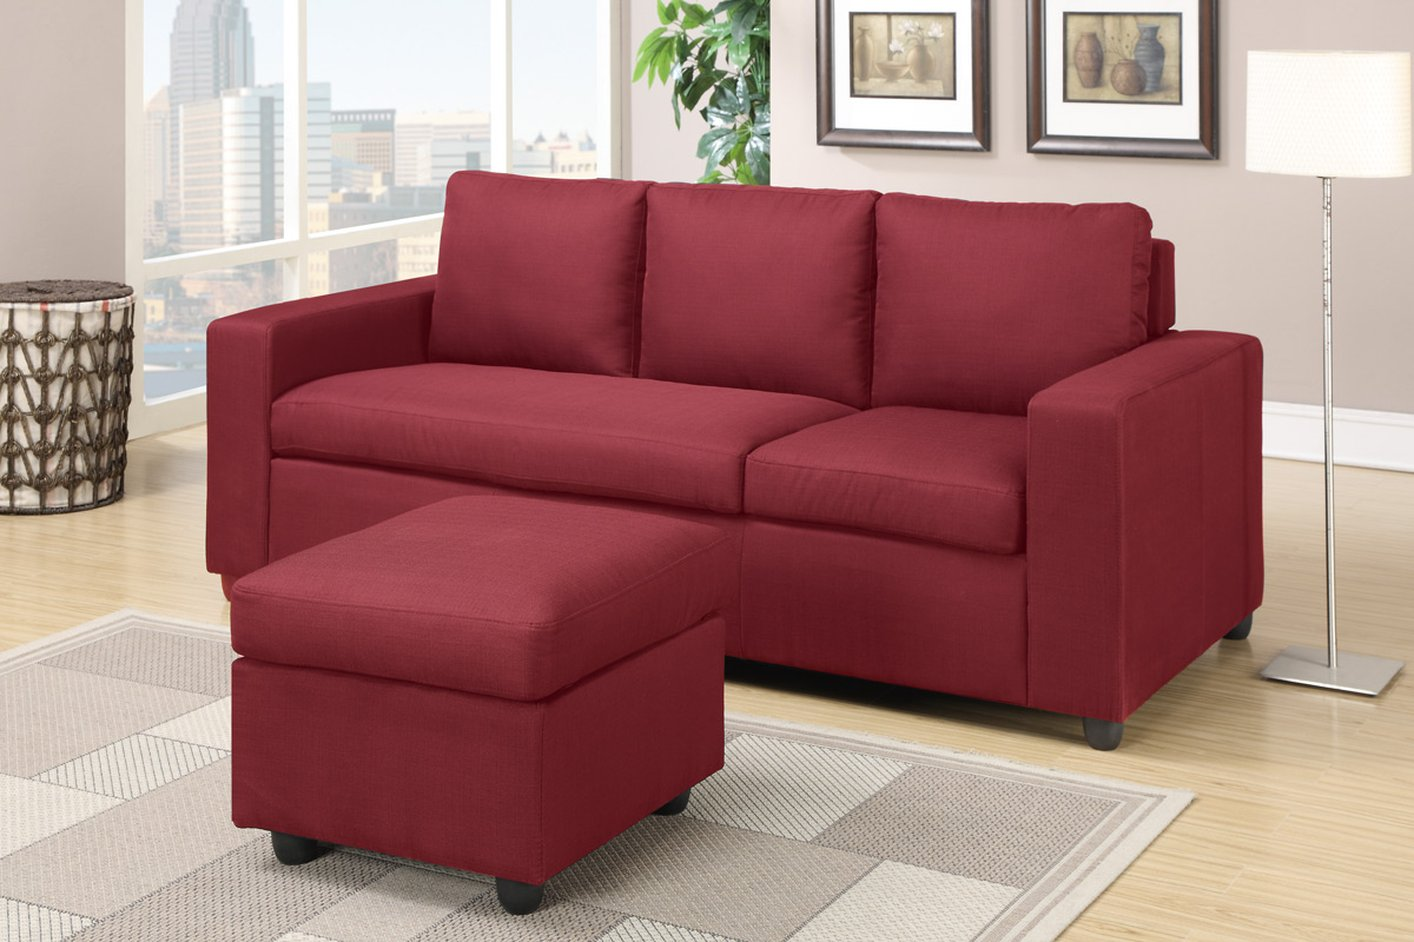 red fabric sofa leather cleaners bangalore akeneo sectional steal a furniture